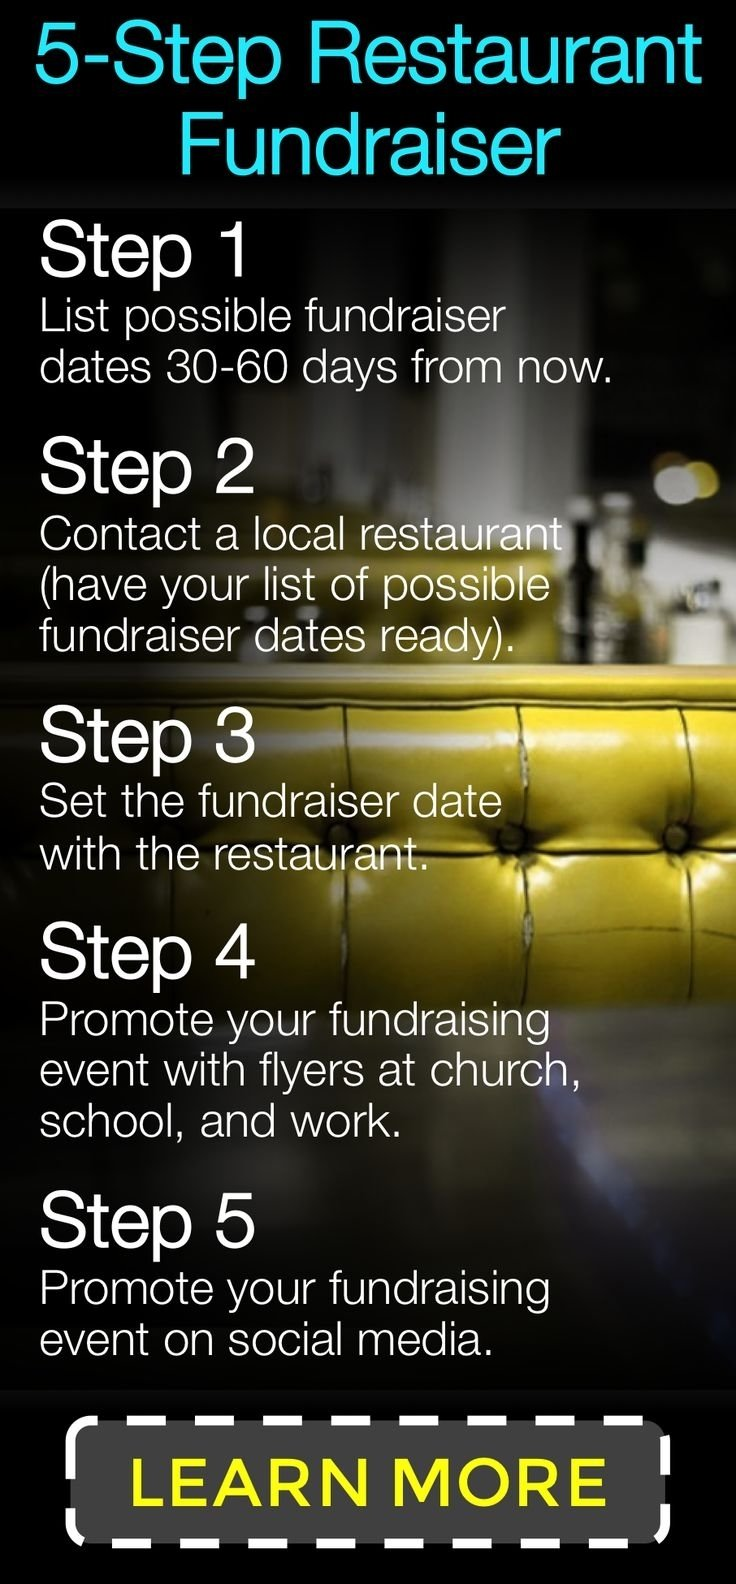 10 Amazing Easy Fundraising Ideas For Sports Teams 861 best fundraising ideas images on pinterest fundraising ideas 13 2021